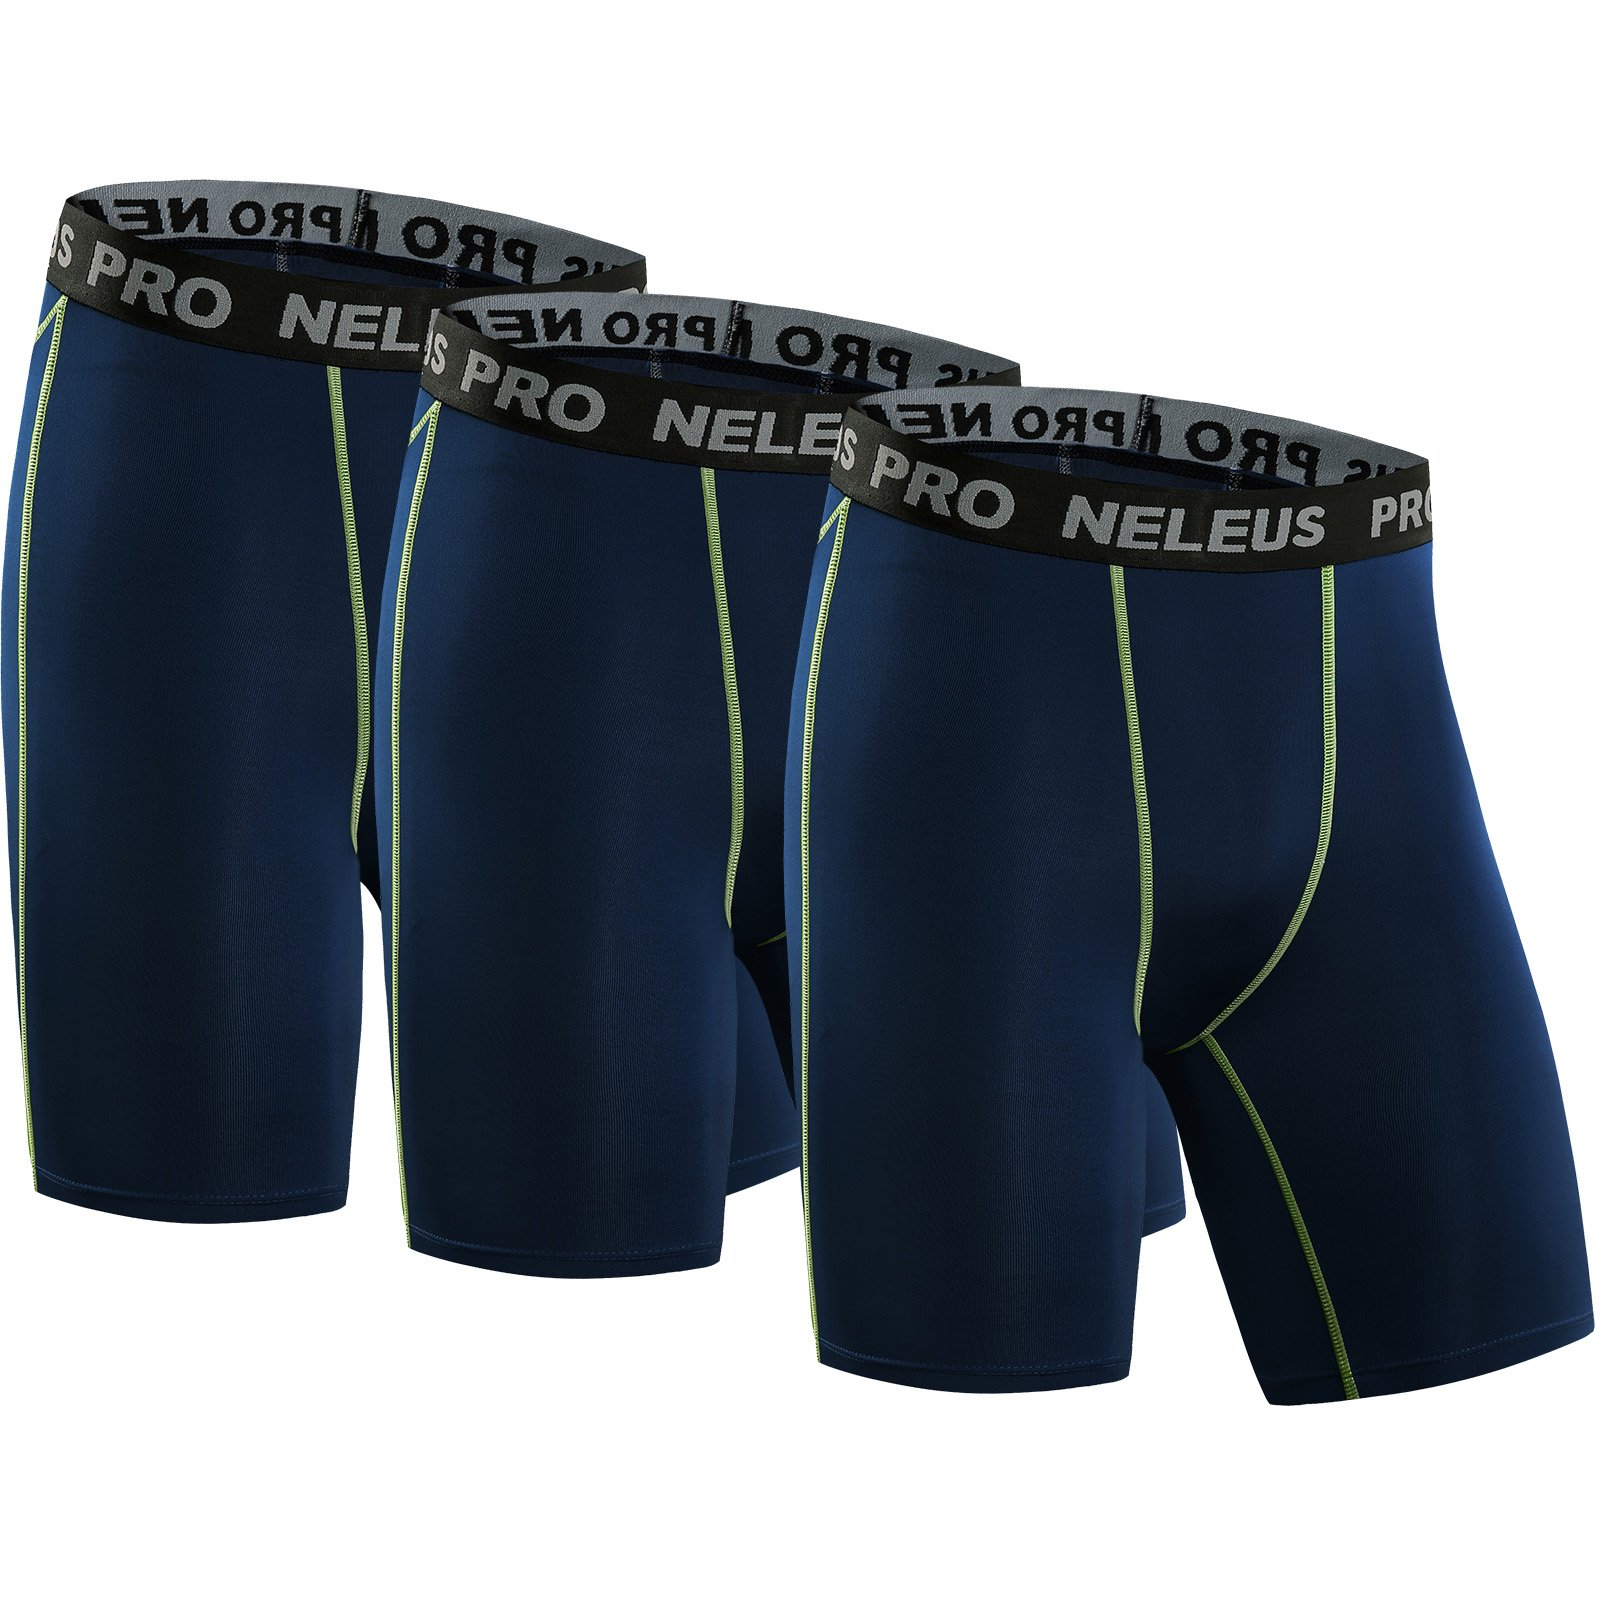 Neleus Men's 3 Pack Compression Short,047,Navy Blue,US S,EU M